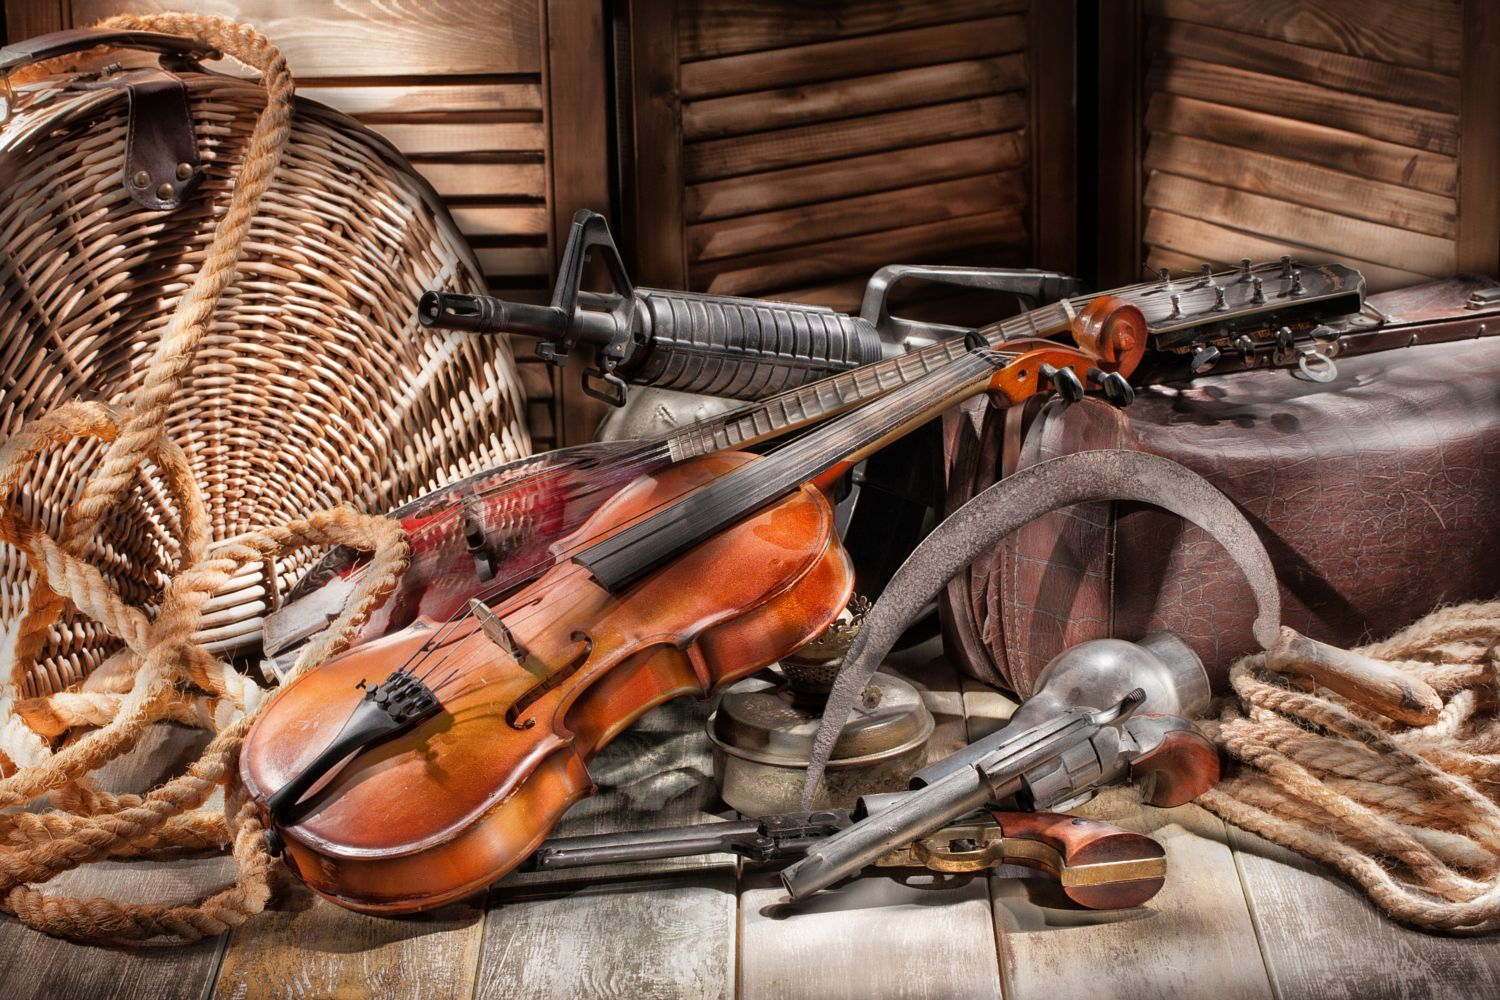 Machine Guna And Violin by Andrey Skat on 500px